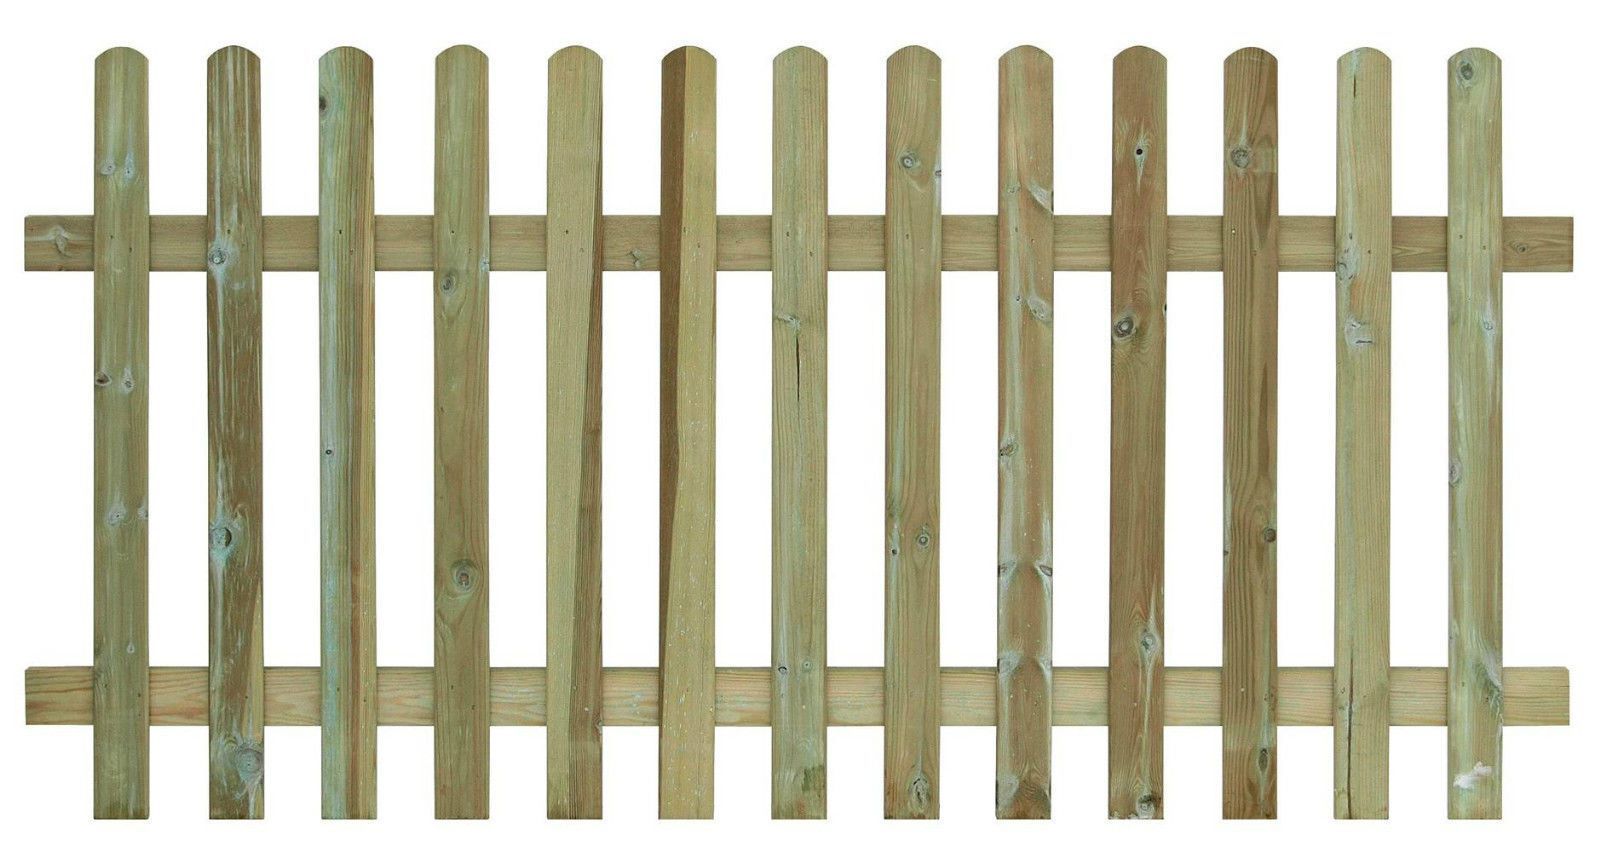 Round Top Palisade (Picket) Panel all sizes from